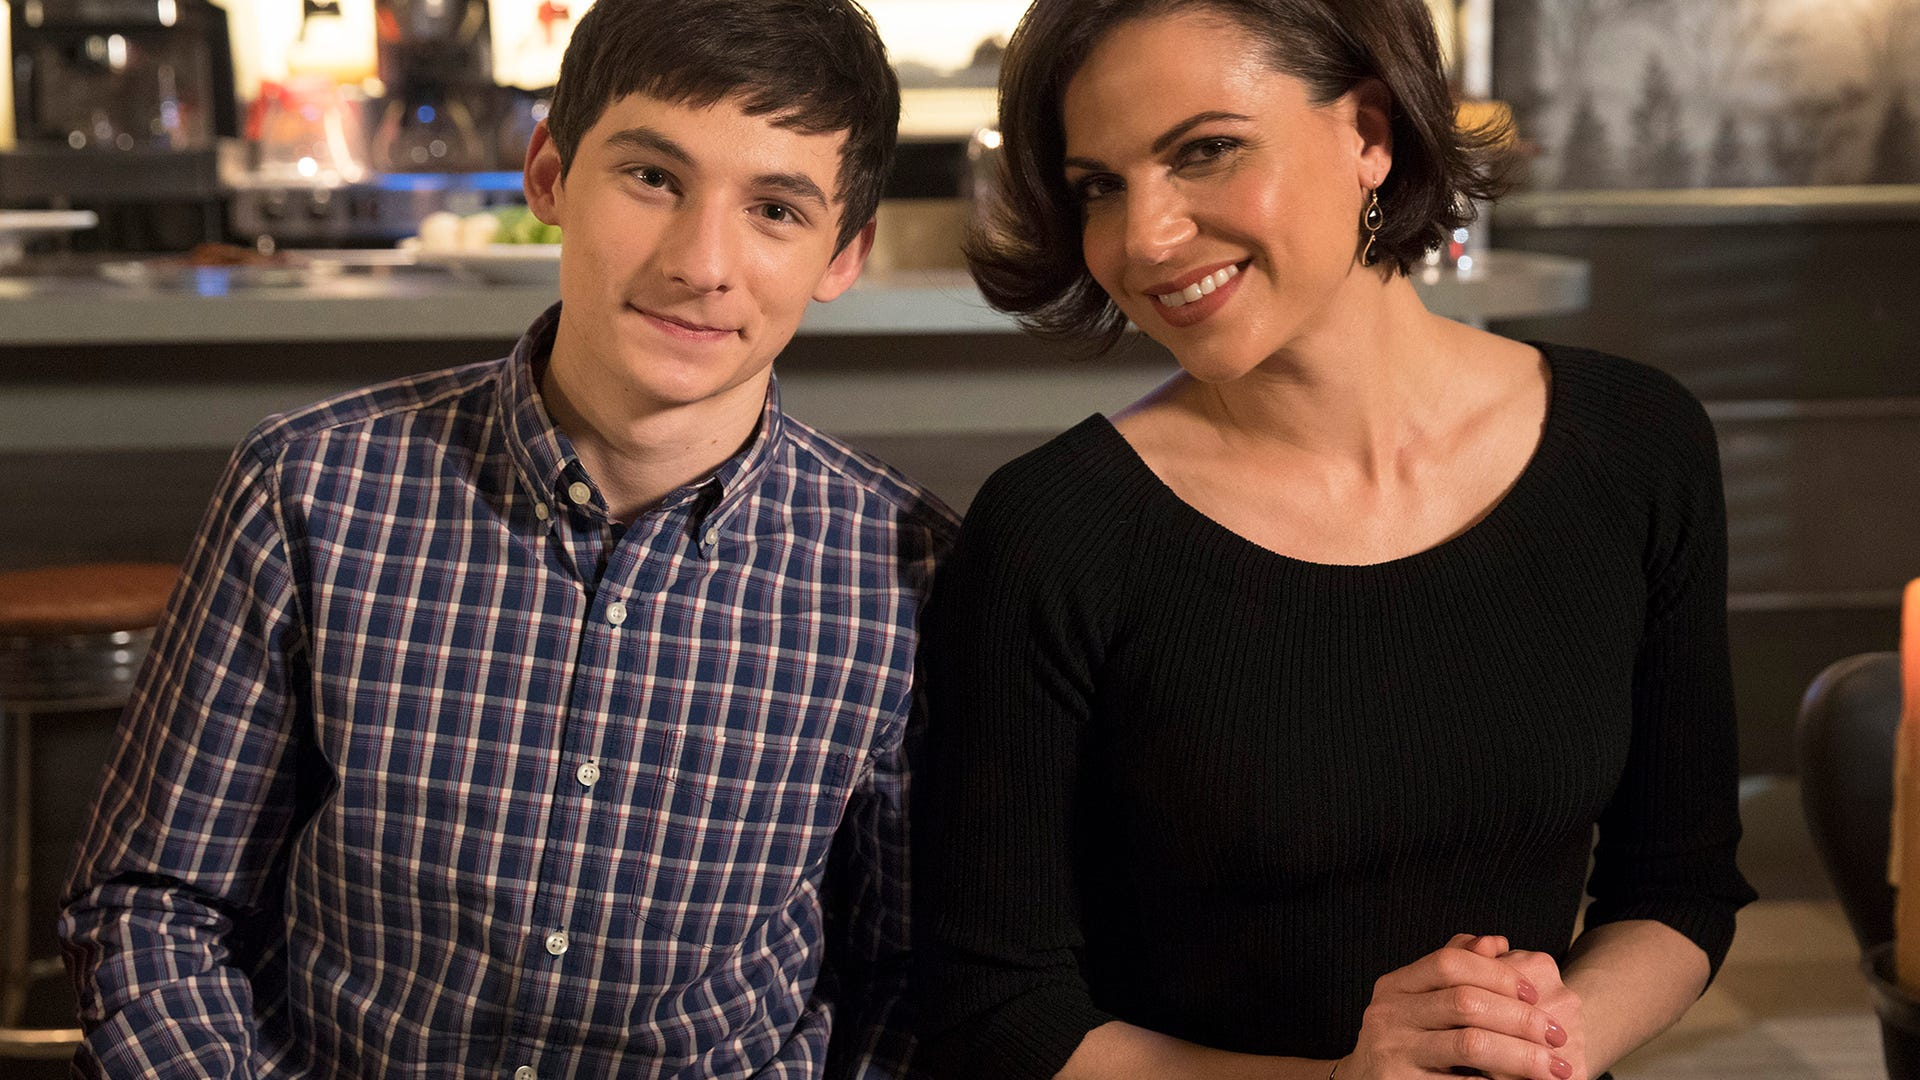 Jared Gilmore and Lana Parrilla, Once Upon a Time